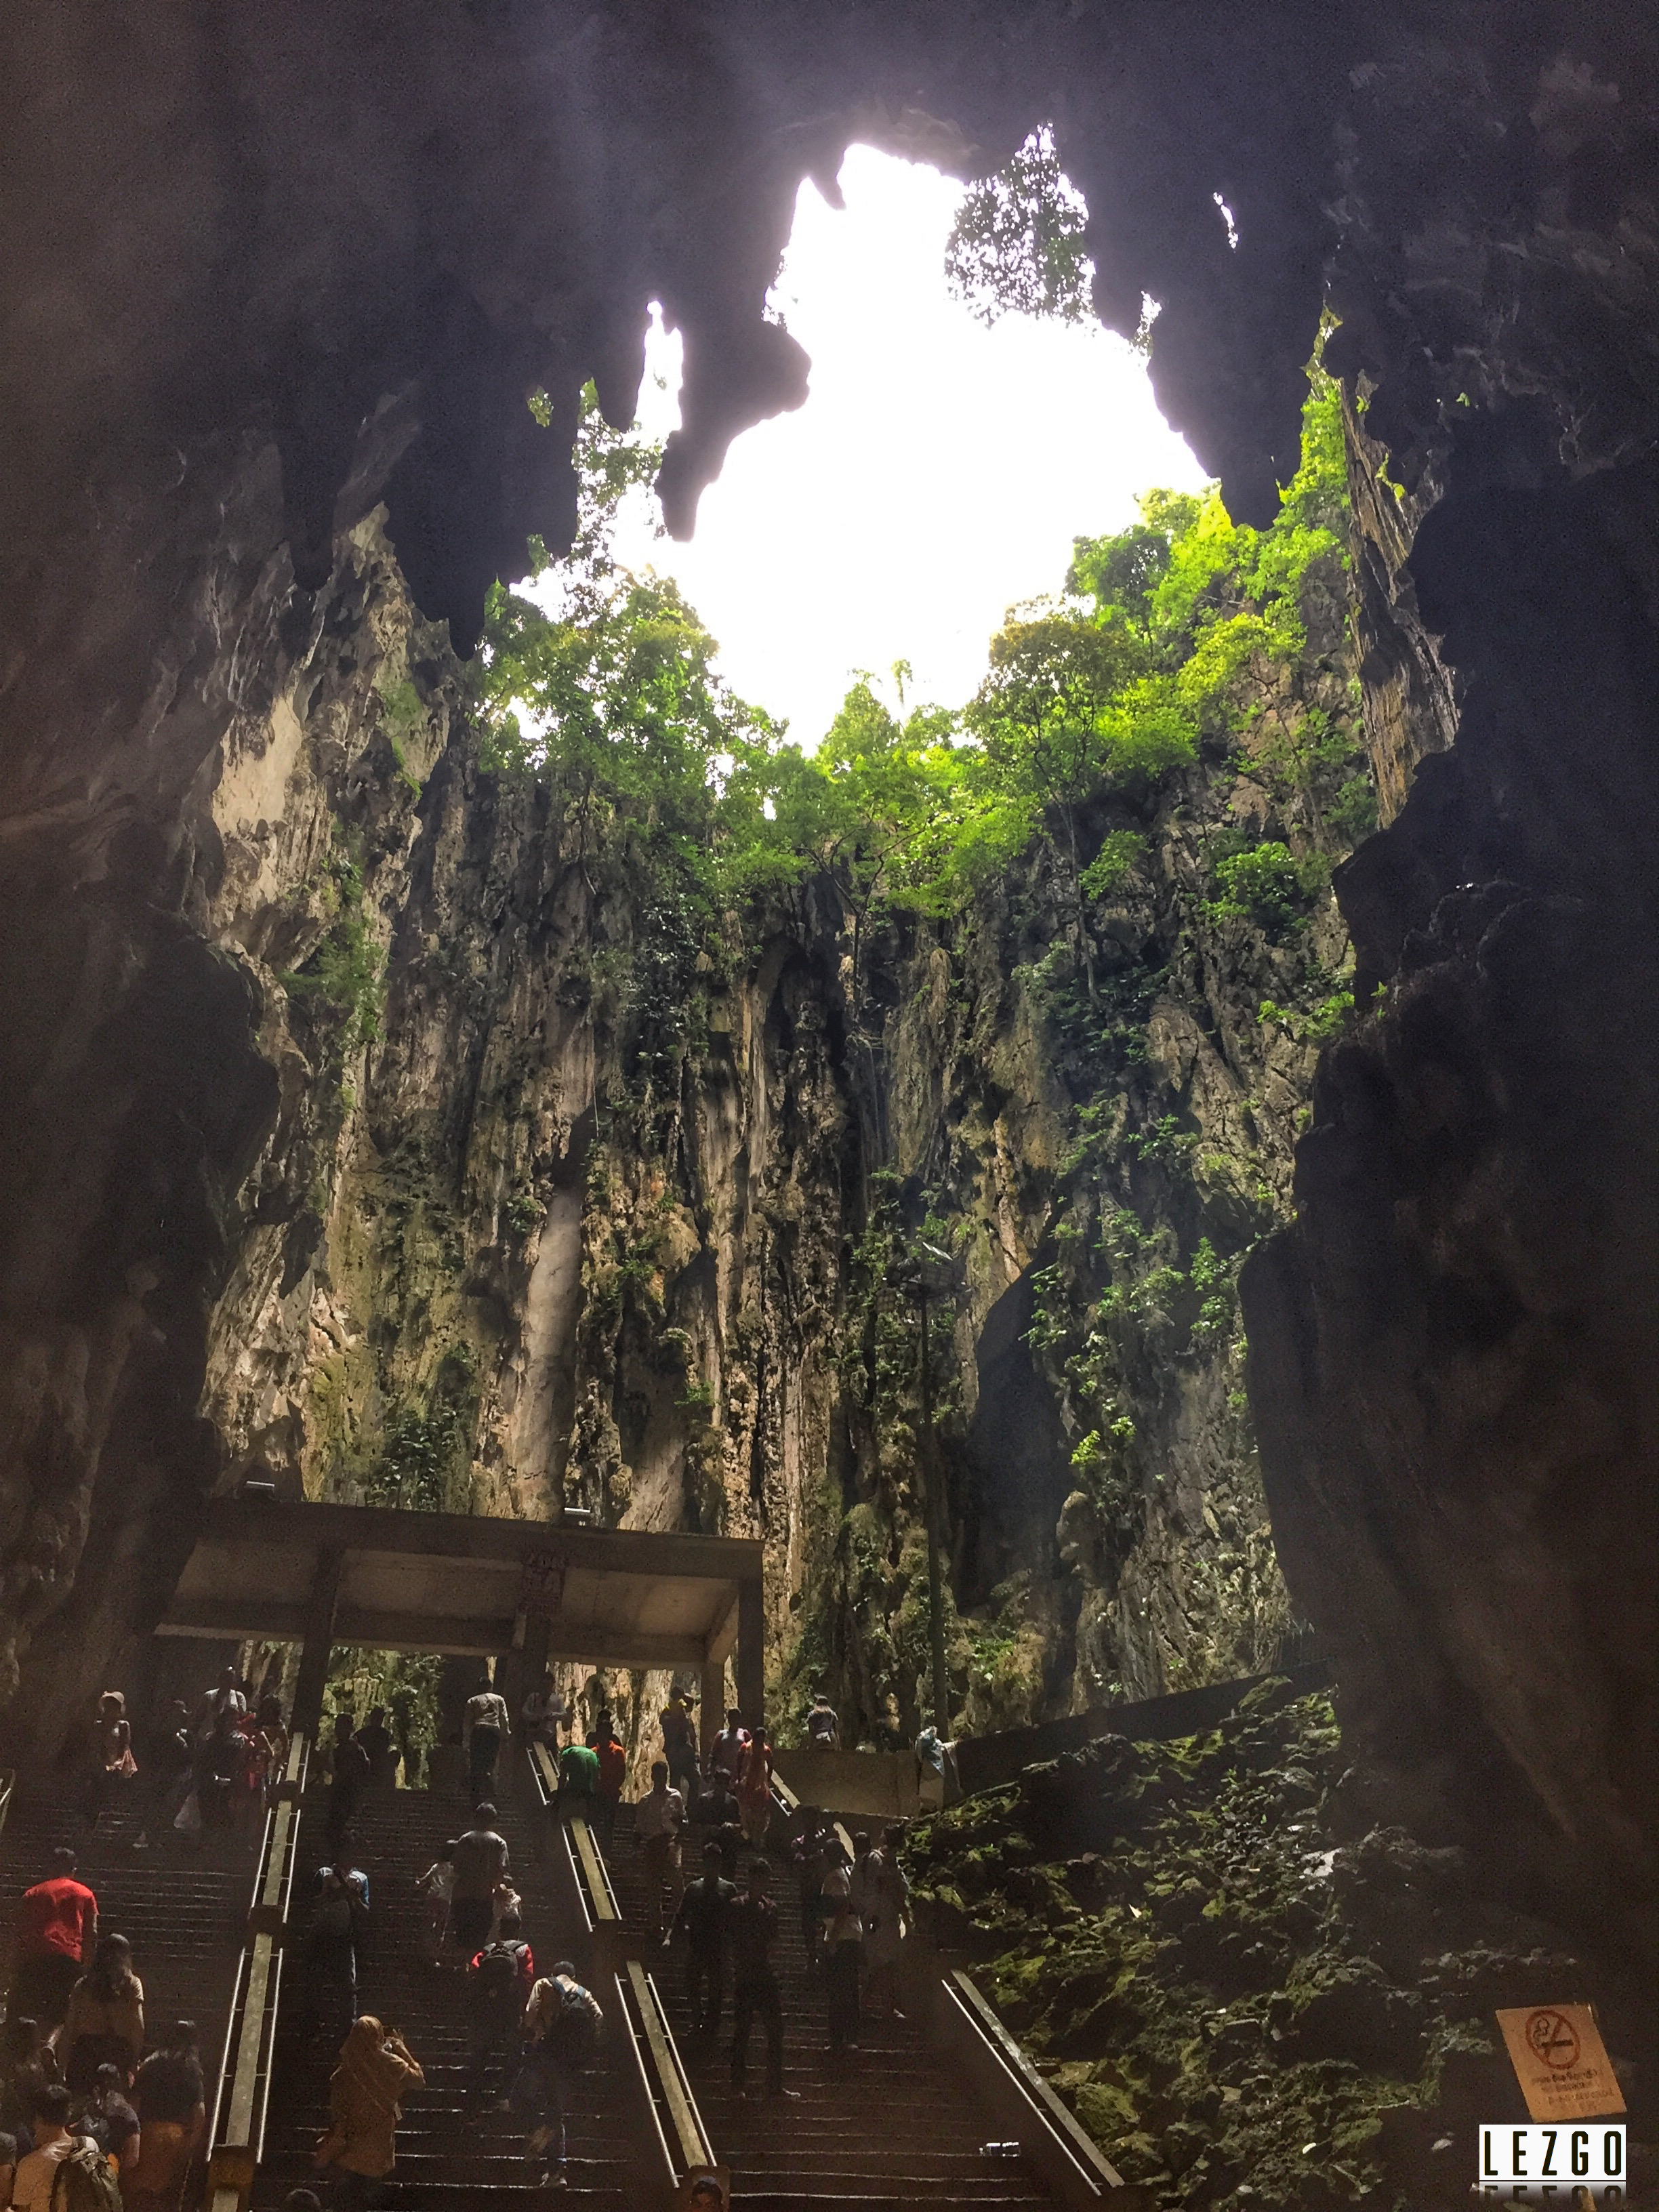 View inside the Caves, Malaysia June 2017